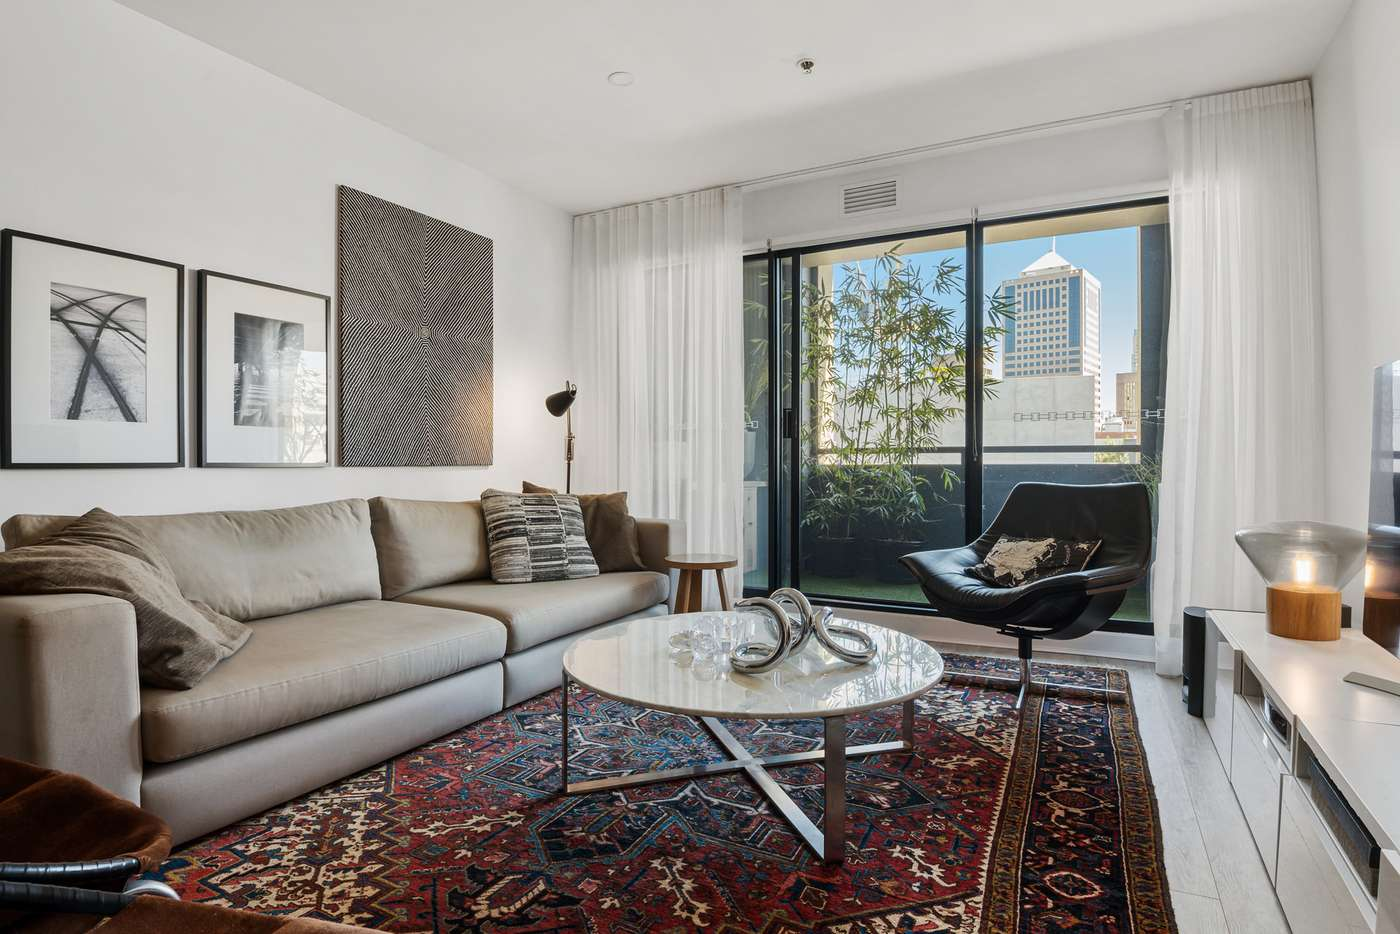 Main view of Homely apartment listing, 45/74-80 Reservoir street, Surry Hills NSW 2010